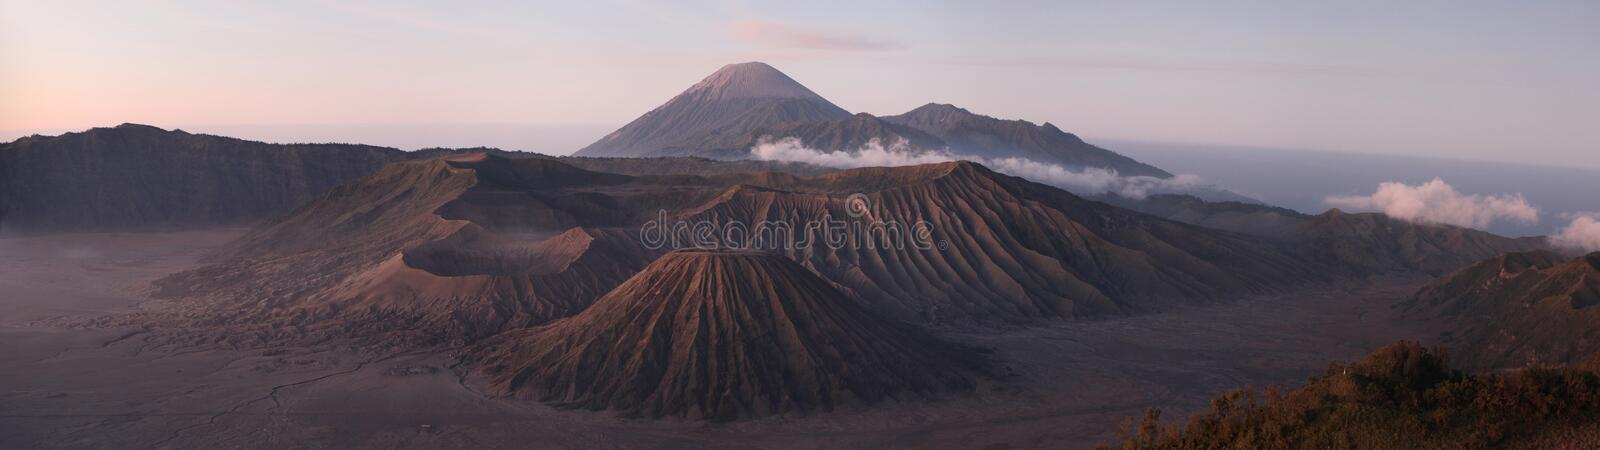 Sunrise over Mount Bromo and the Tengger Caldera in East Java, I. Sunrise over Mount Bromo 2,329 m and the Tengger Caldera in East Java, Indonesia. Panorama from royalty free stock photos